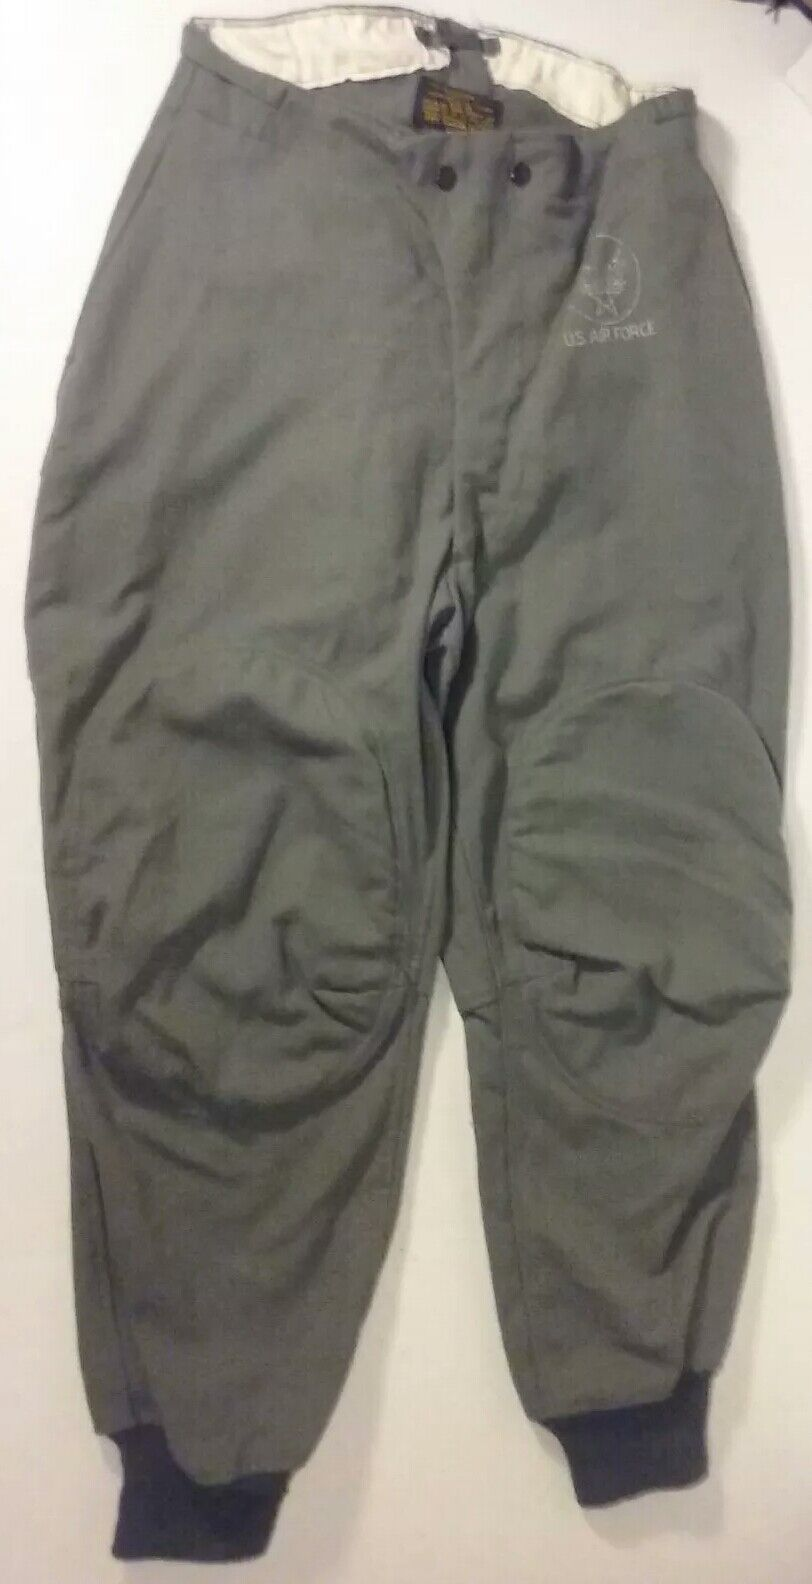 Vintage US Air Force Flying Trousers Type E-1B 50s Wool Pants Size 34 Military